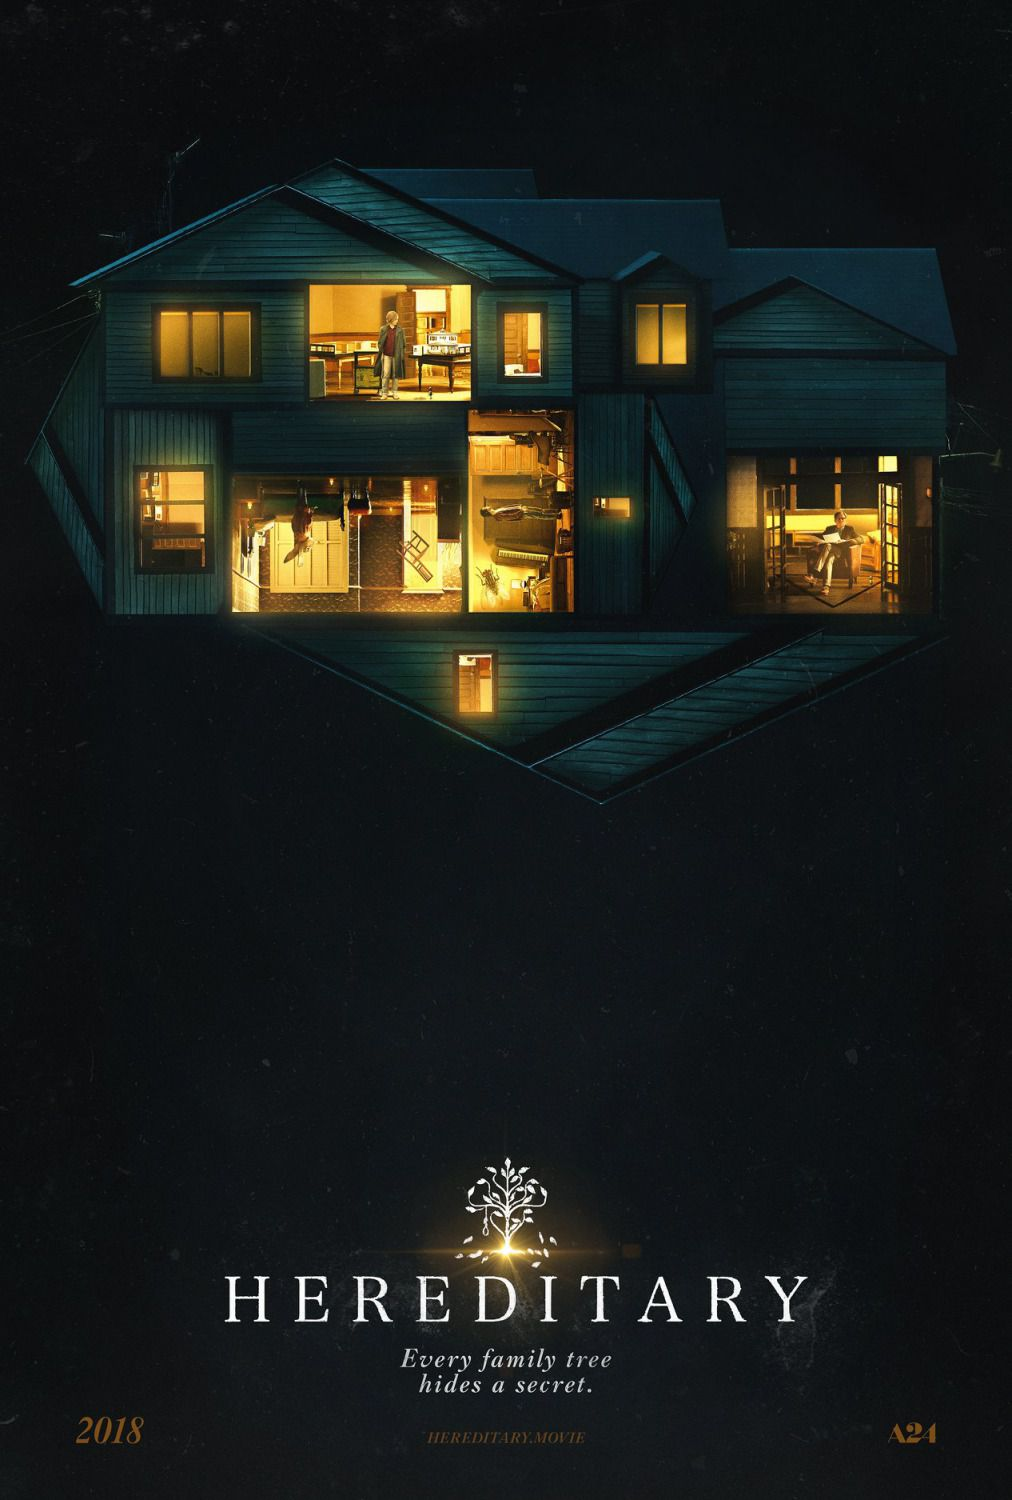 Hereditary - Ereditario - film poster 2018 - light in the house at night